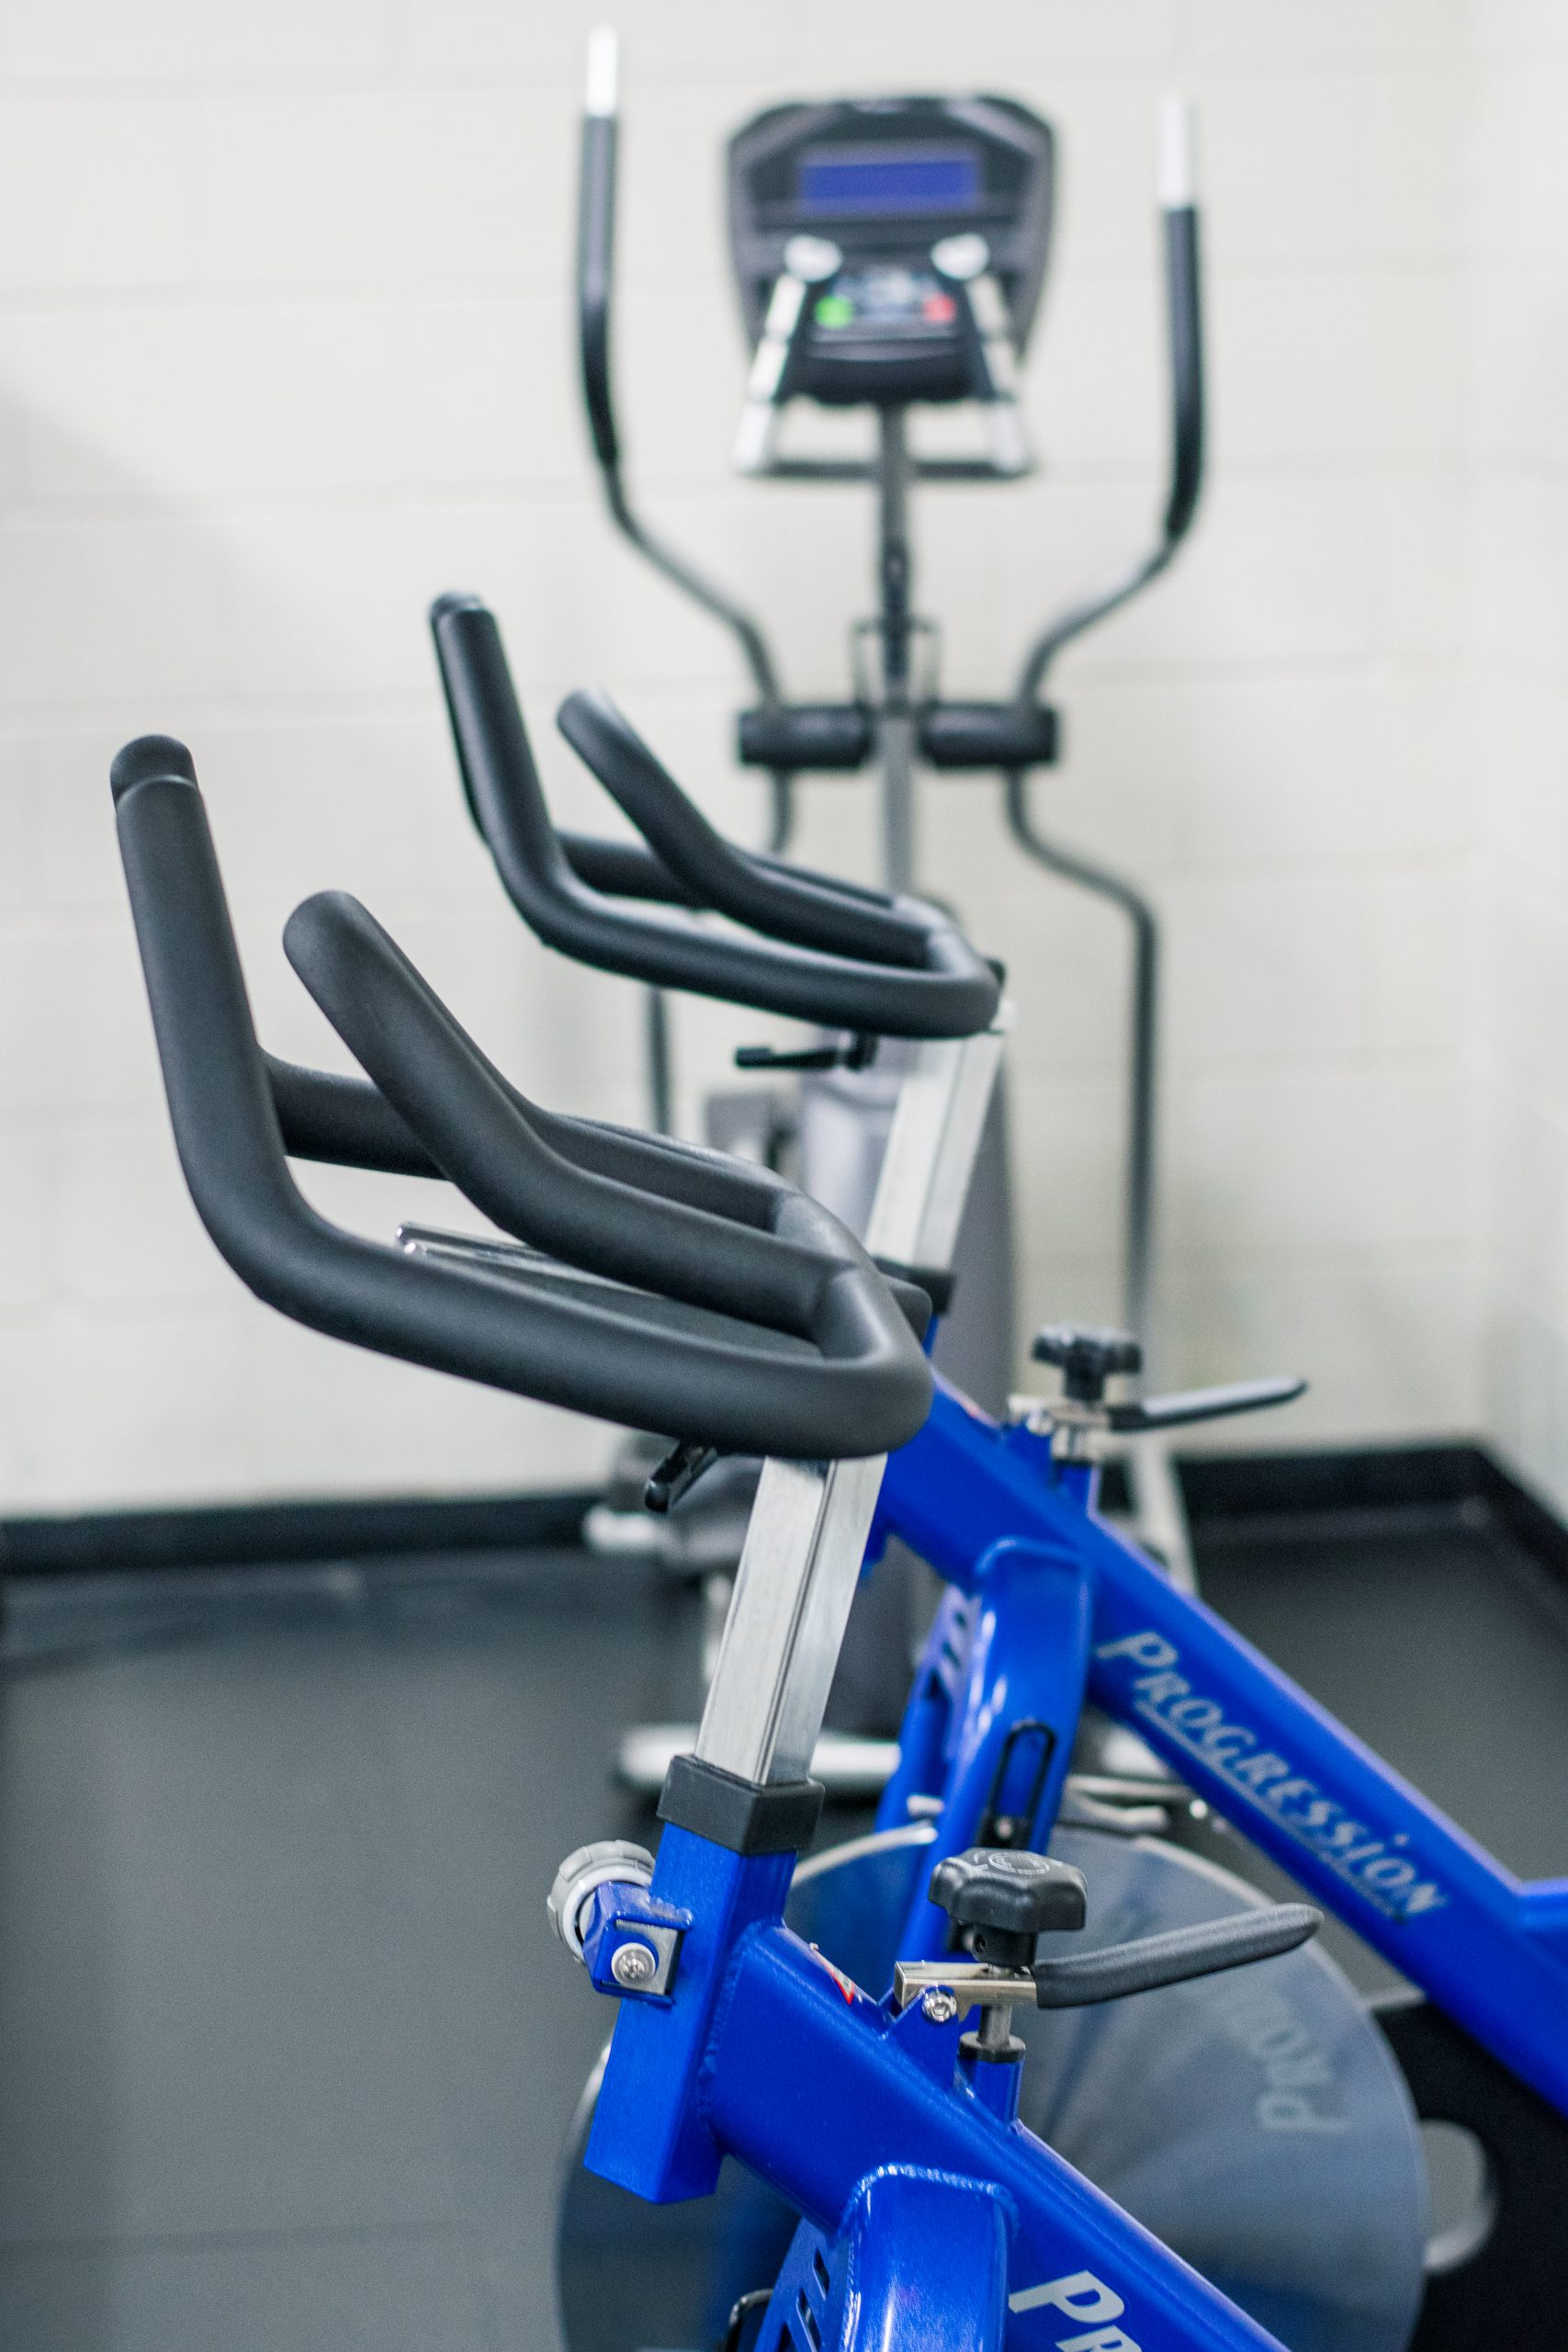 Gym Bicycles